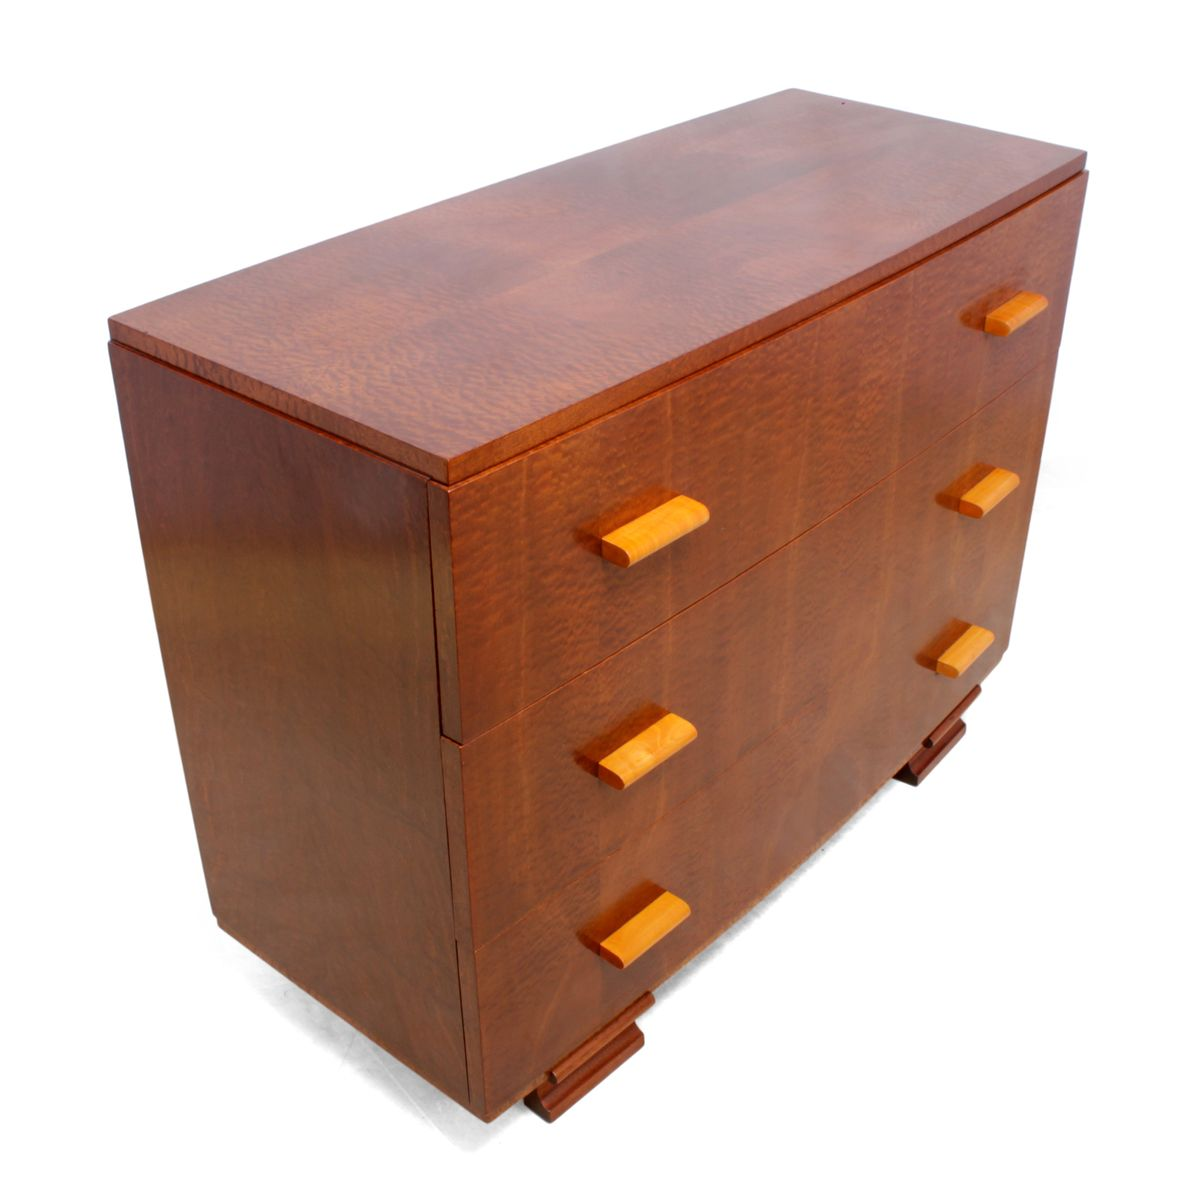 Art deco maple dresser 1930s for sale at pamono for Miroir art deco 1930